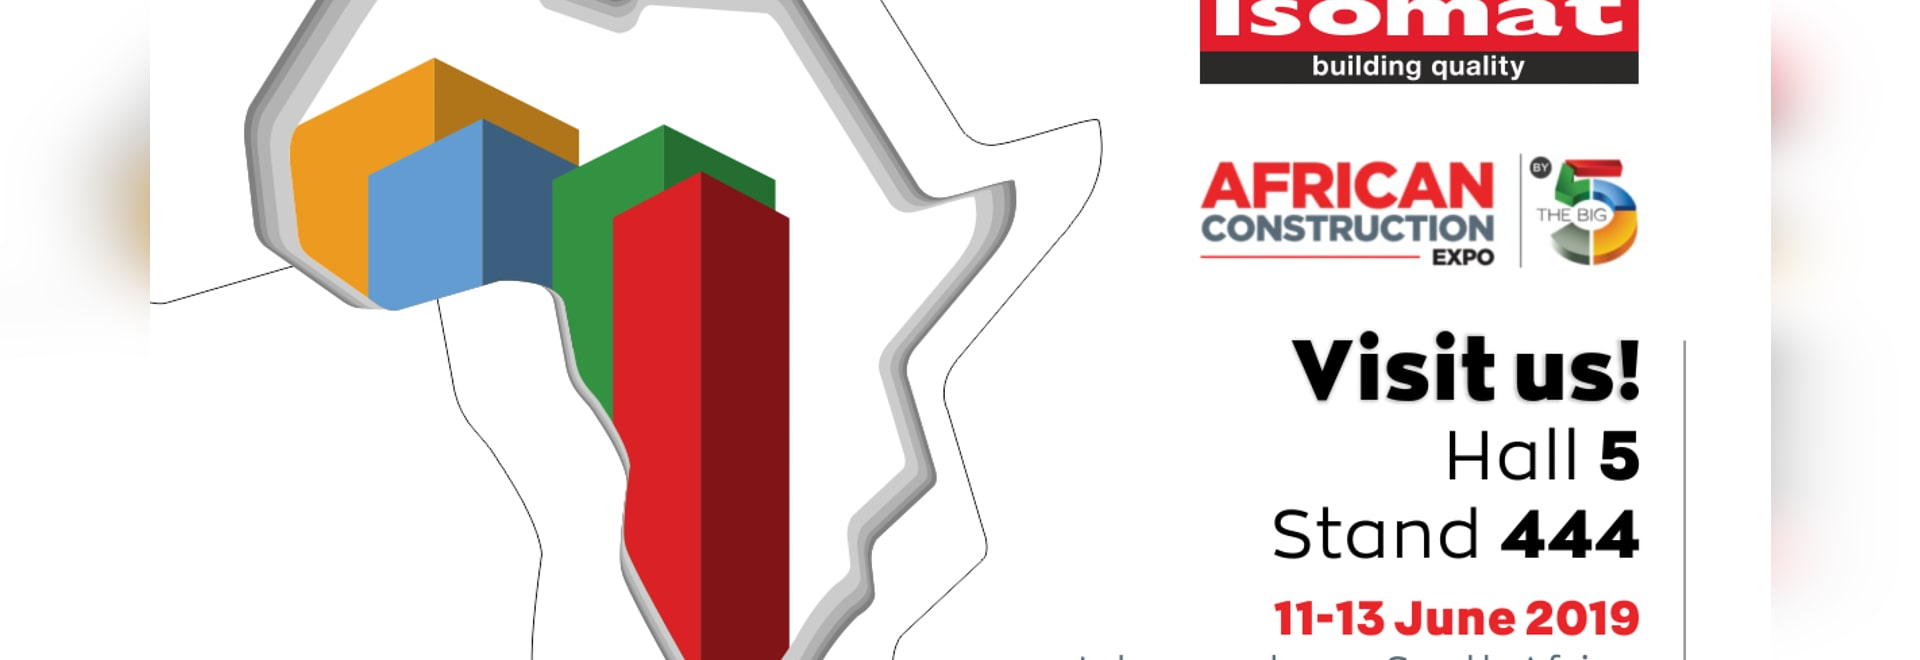 ISOMAT at the African Construction Expo 2019